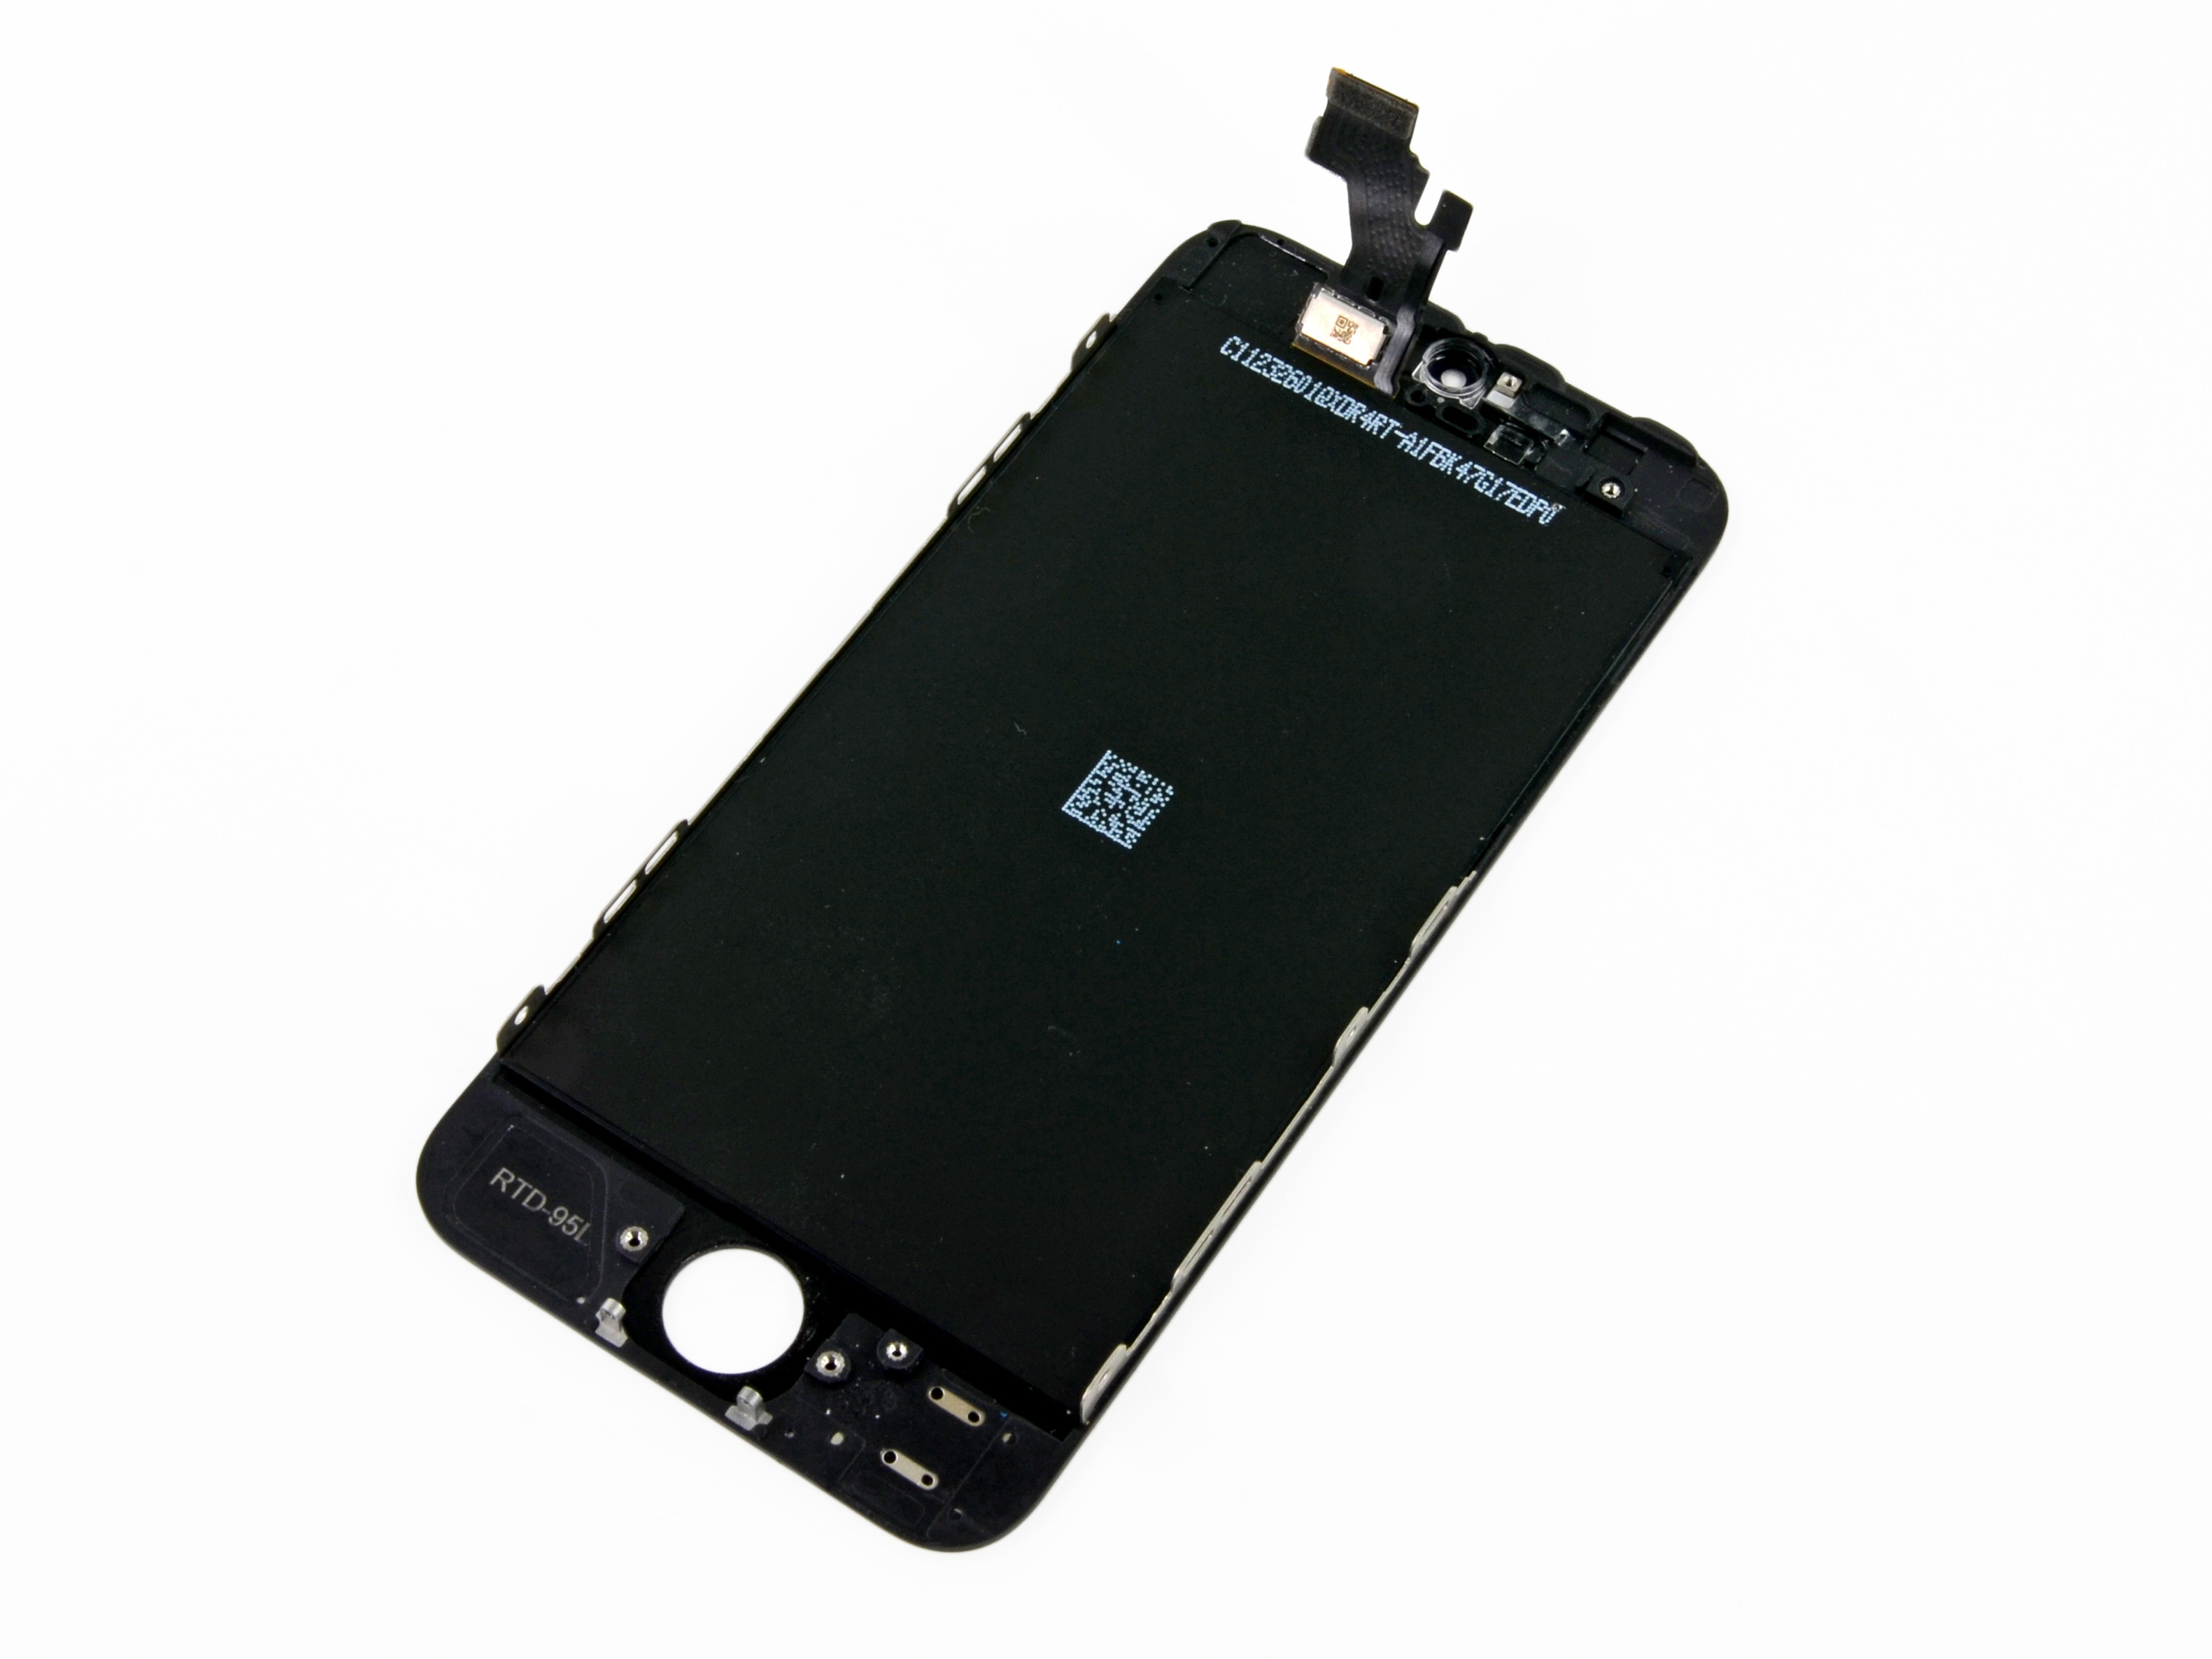 iphone 5c screen popped out iphone 5 front panel replacement ifixit repair guide 9231